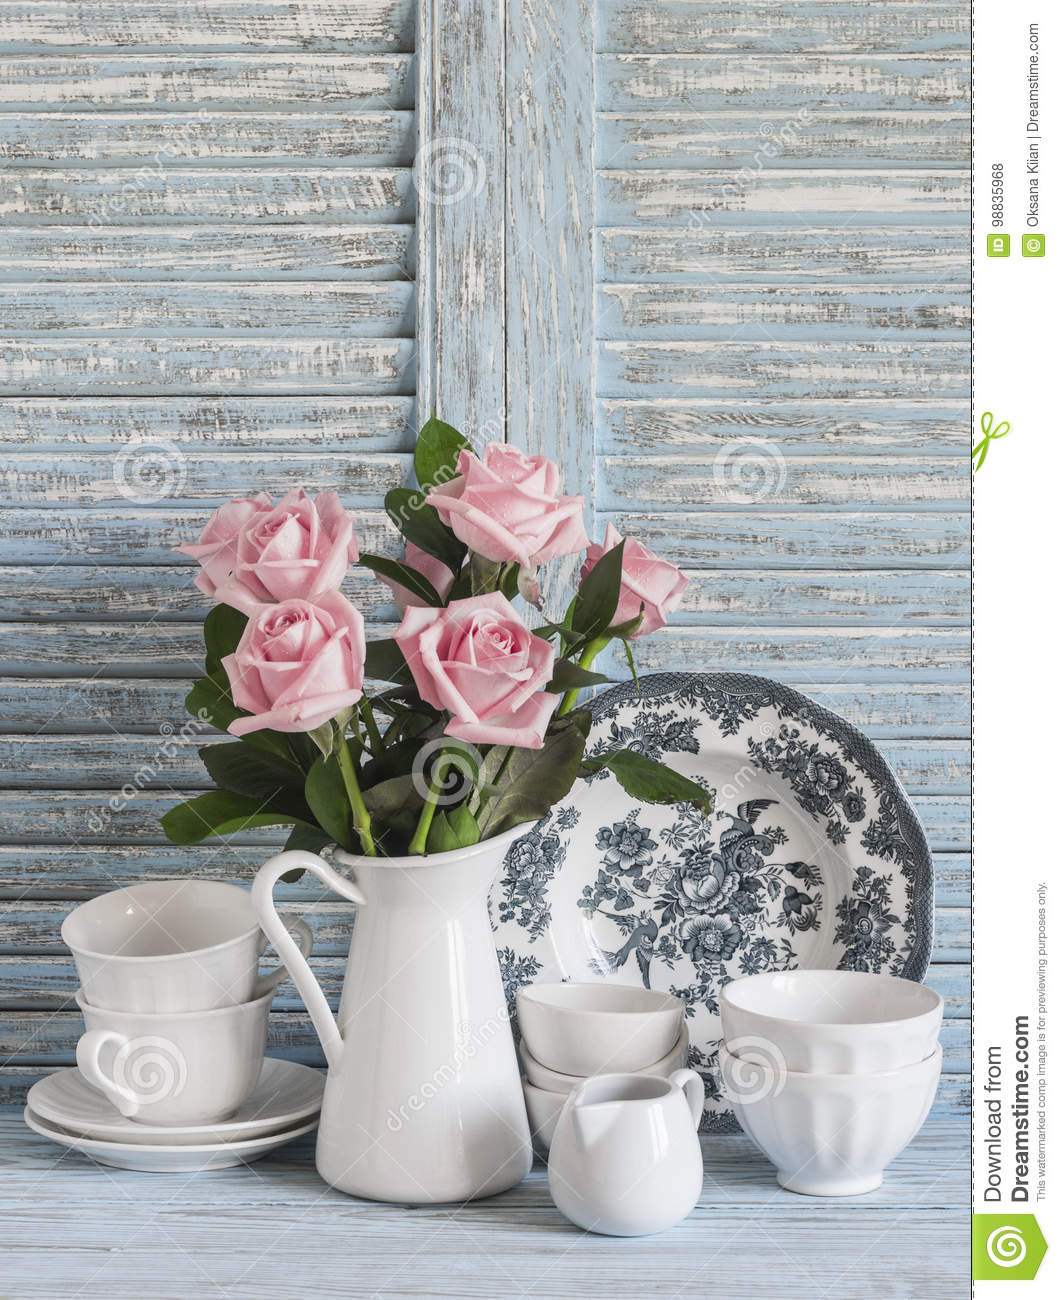 Pink Roses In A White Enameled Pitcher, Vintage Crockery On Blue ...